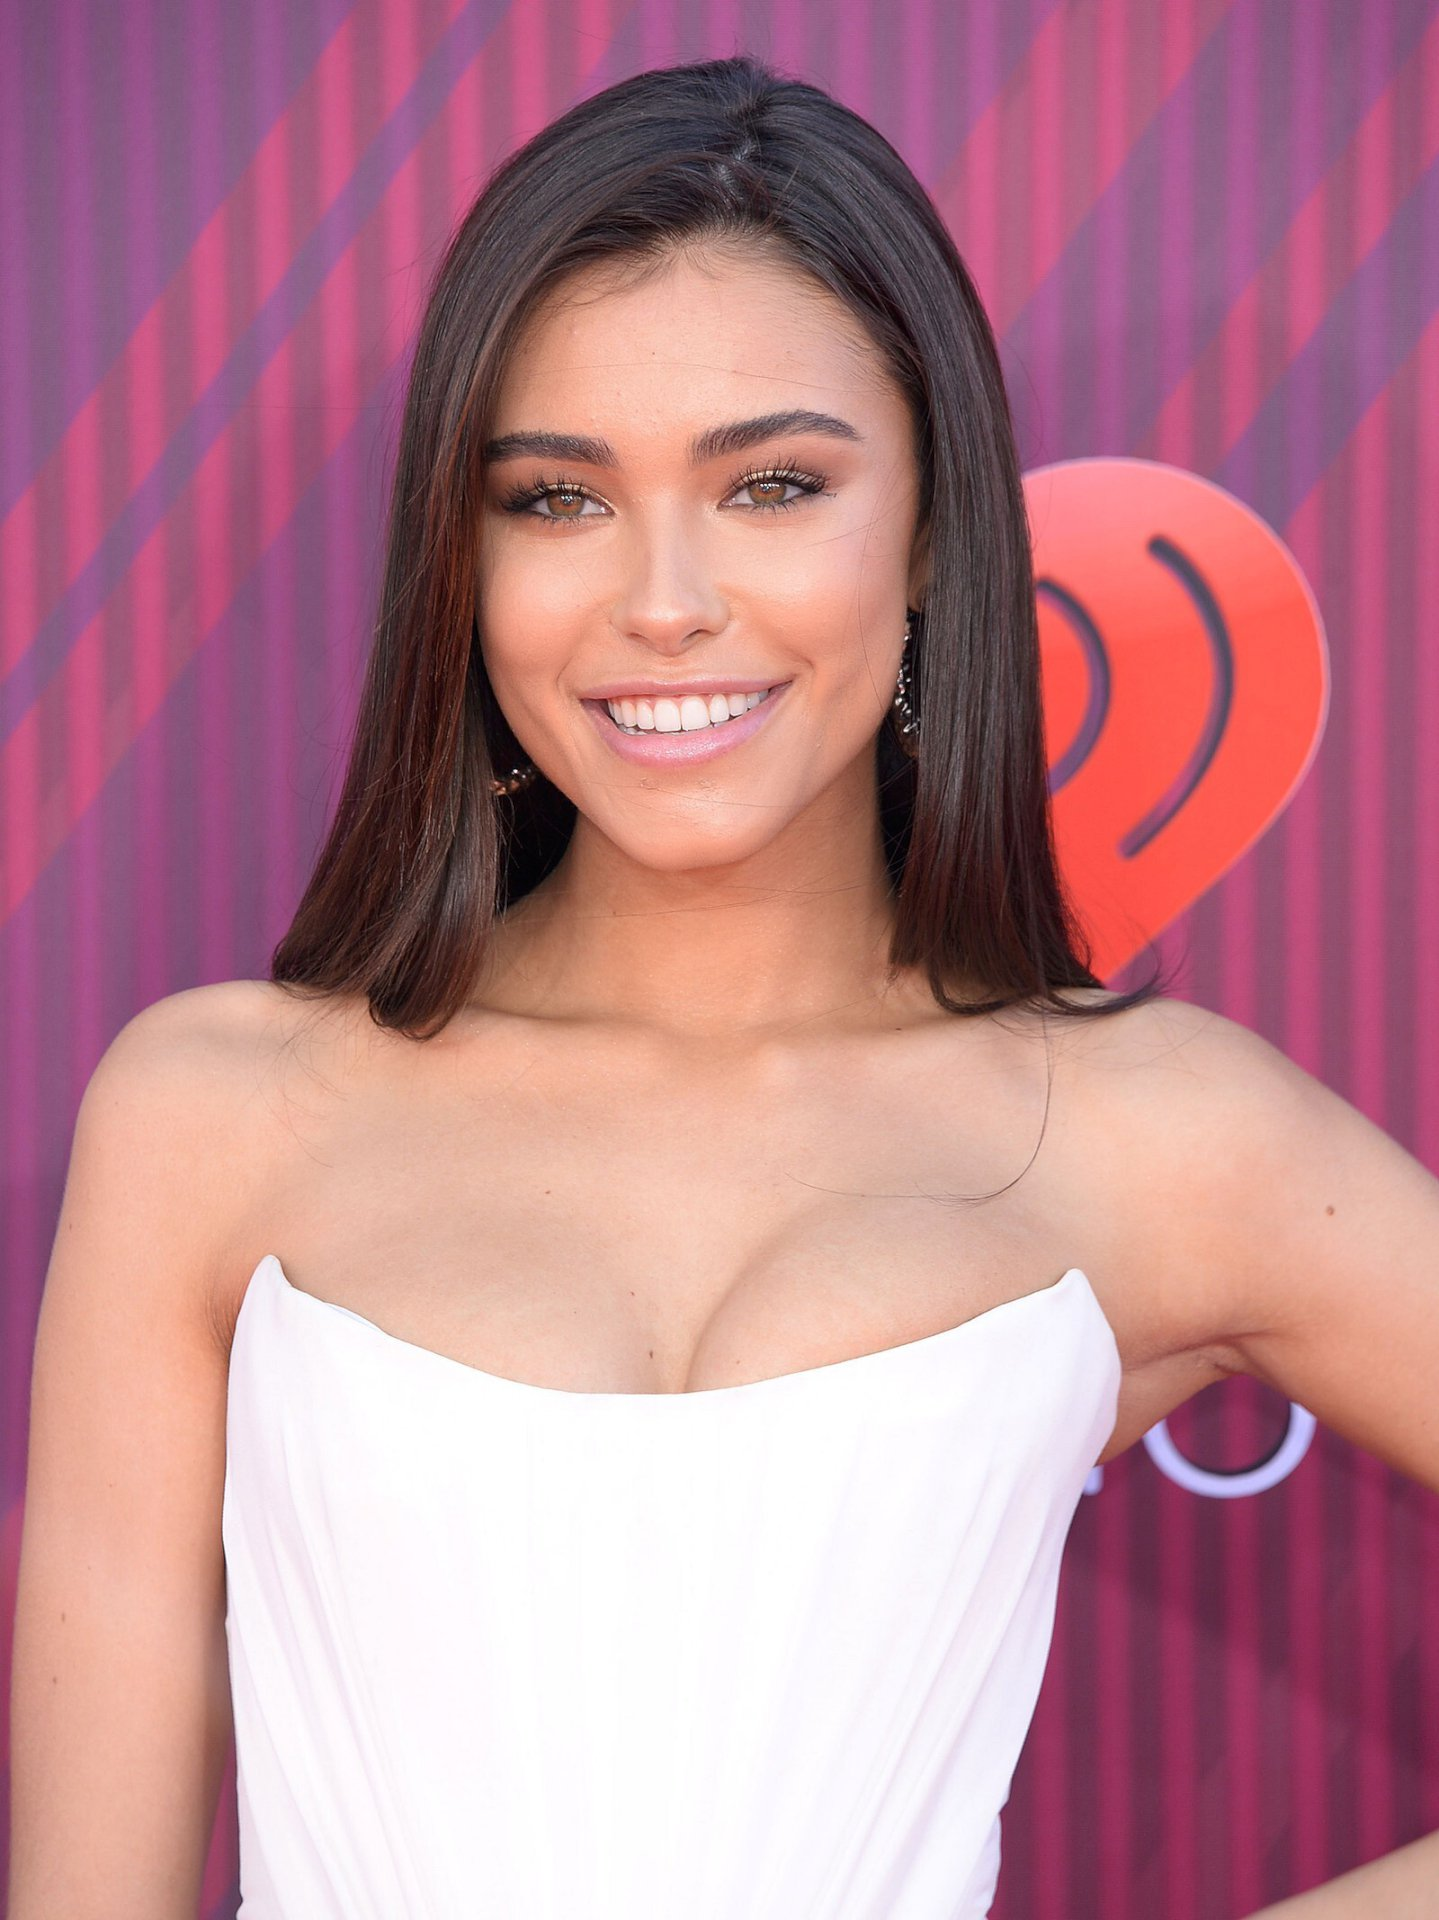 Madison Beer Sexy